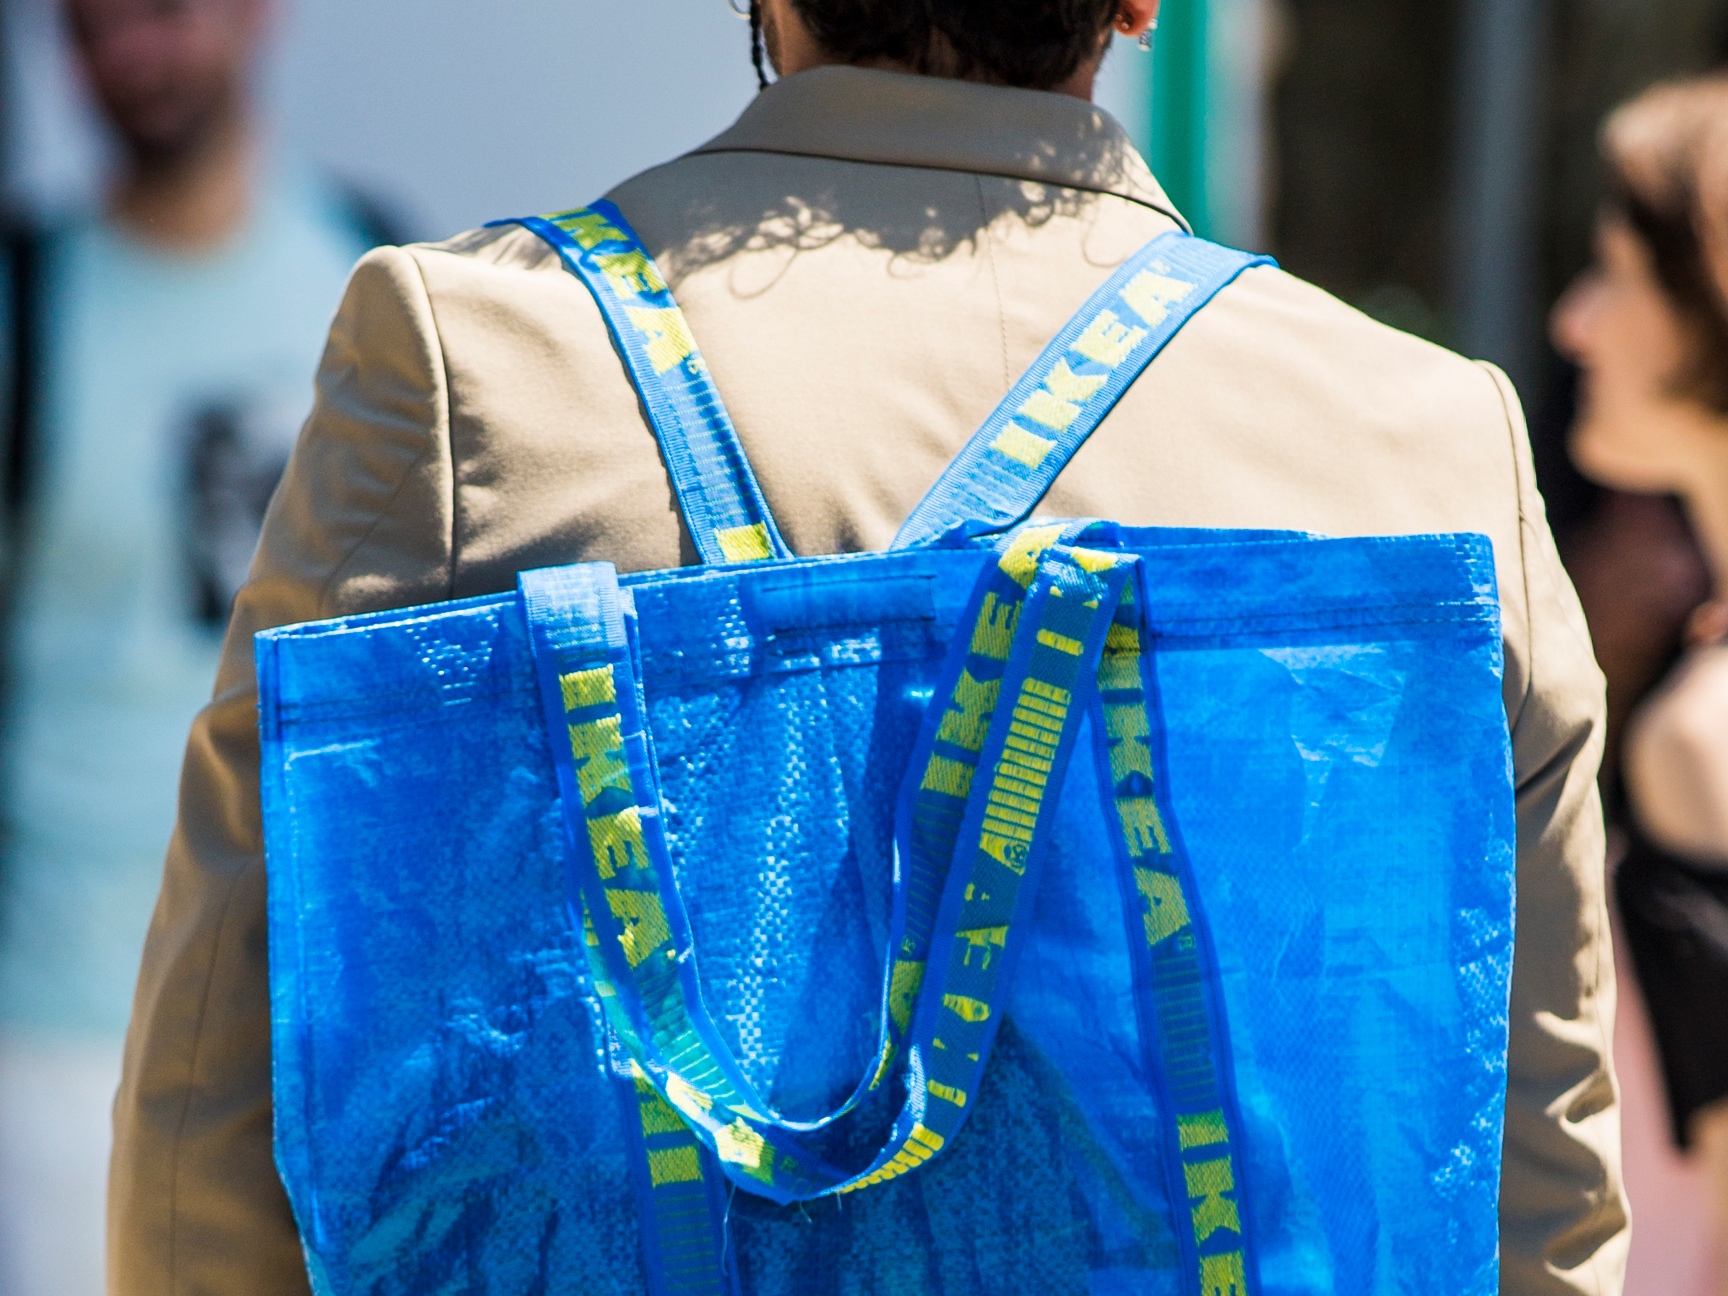 Balenciaga's sell-out Ikea bag, which retailed for US$2,145 (S$2,996). (Photo credit: Getty Images)